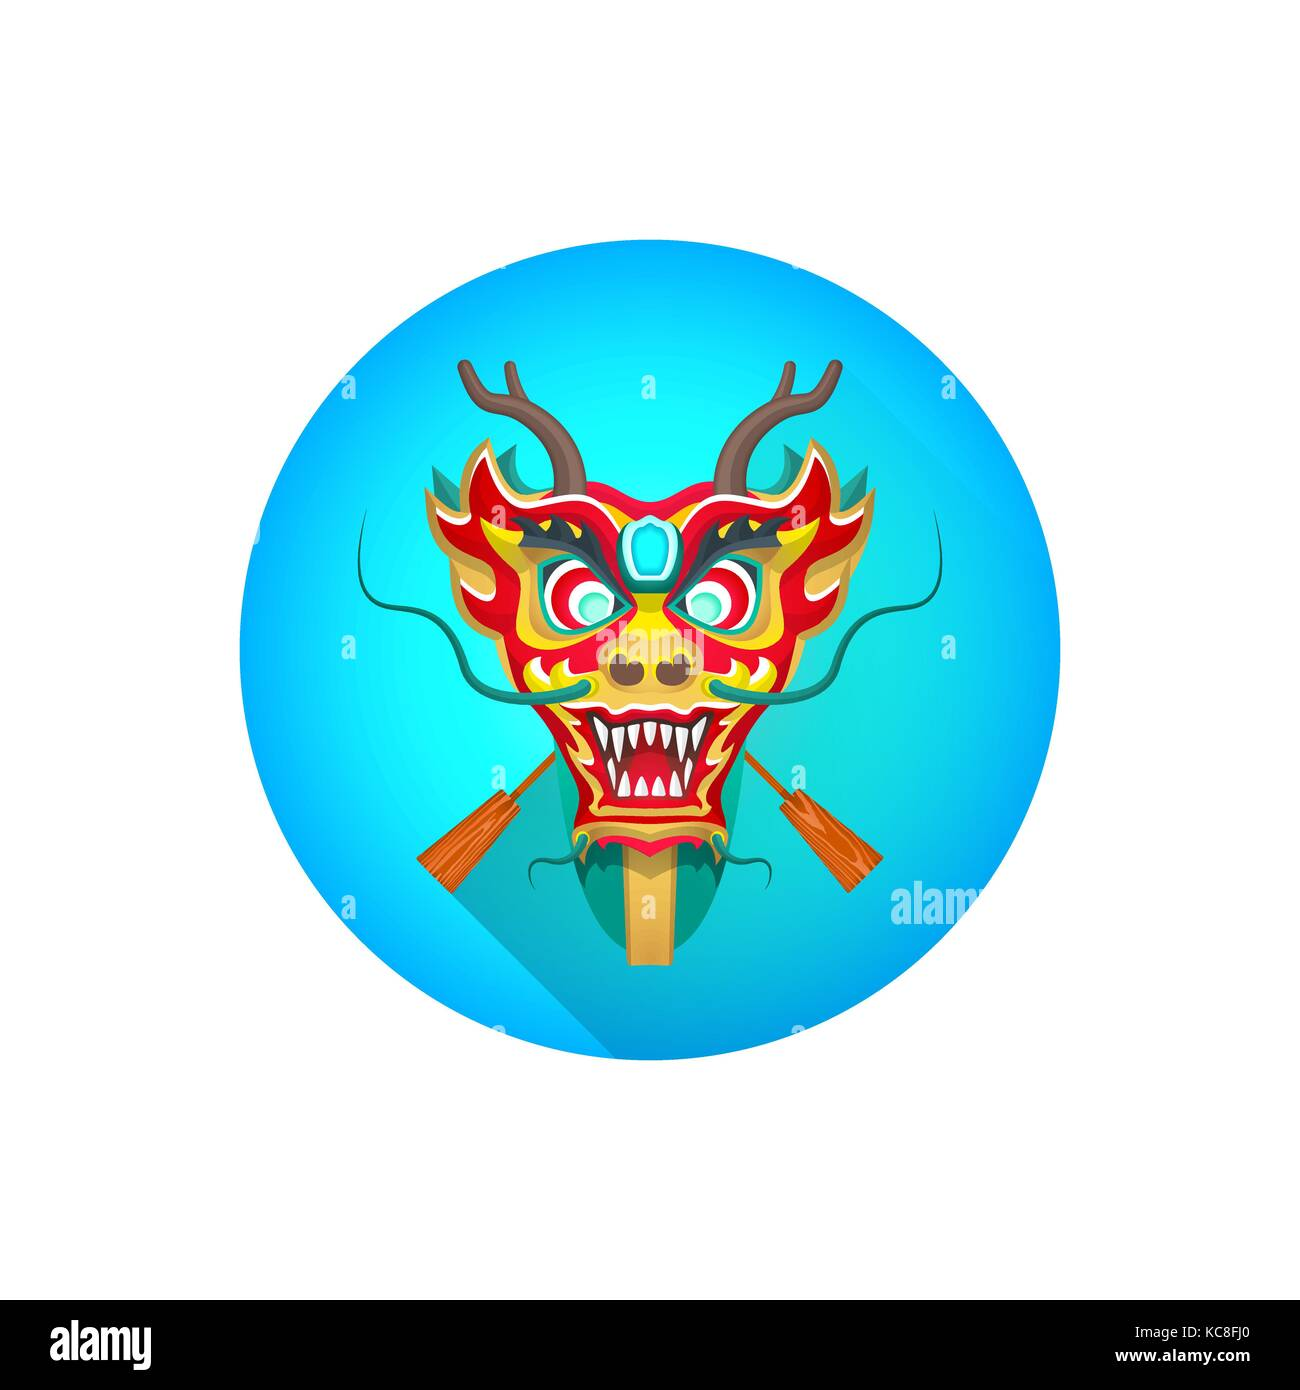 Vector Colorful Traditional Chinese Dragon Boat With Paddles Illustration Flat Shadow Design Blue Circle Background